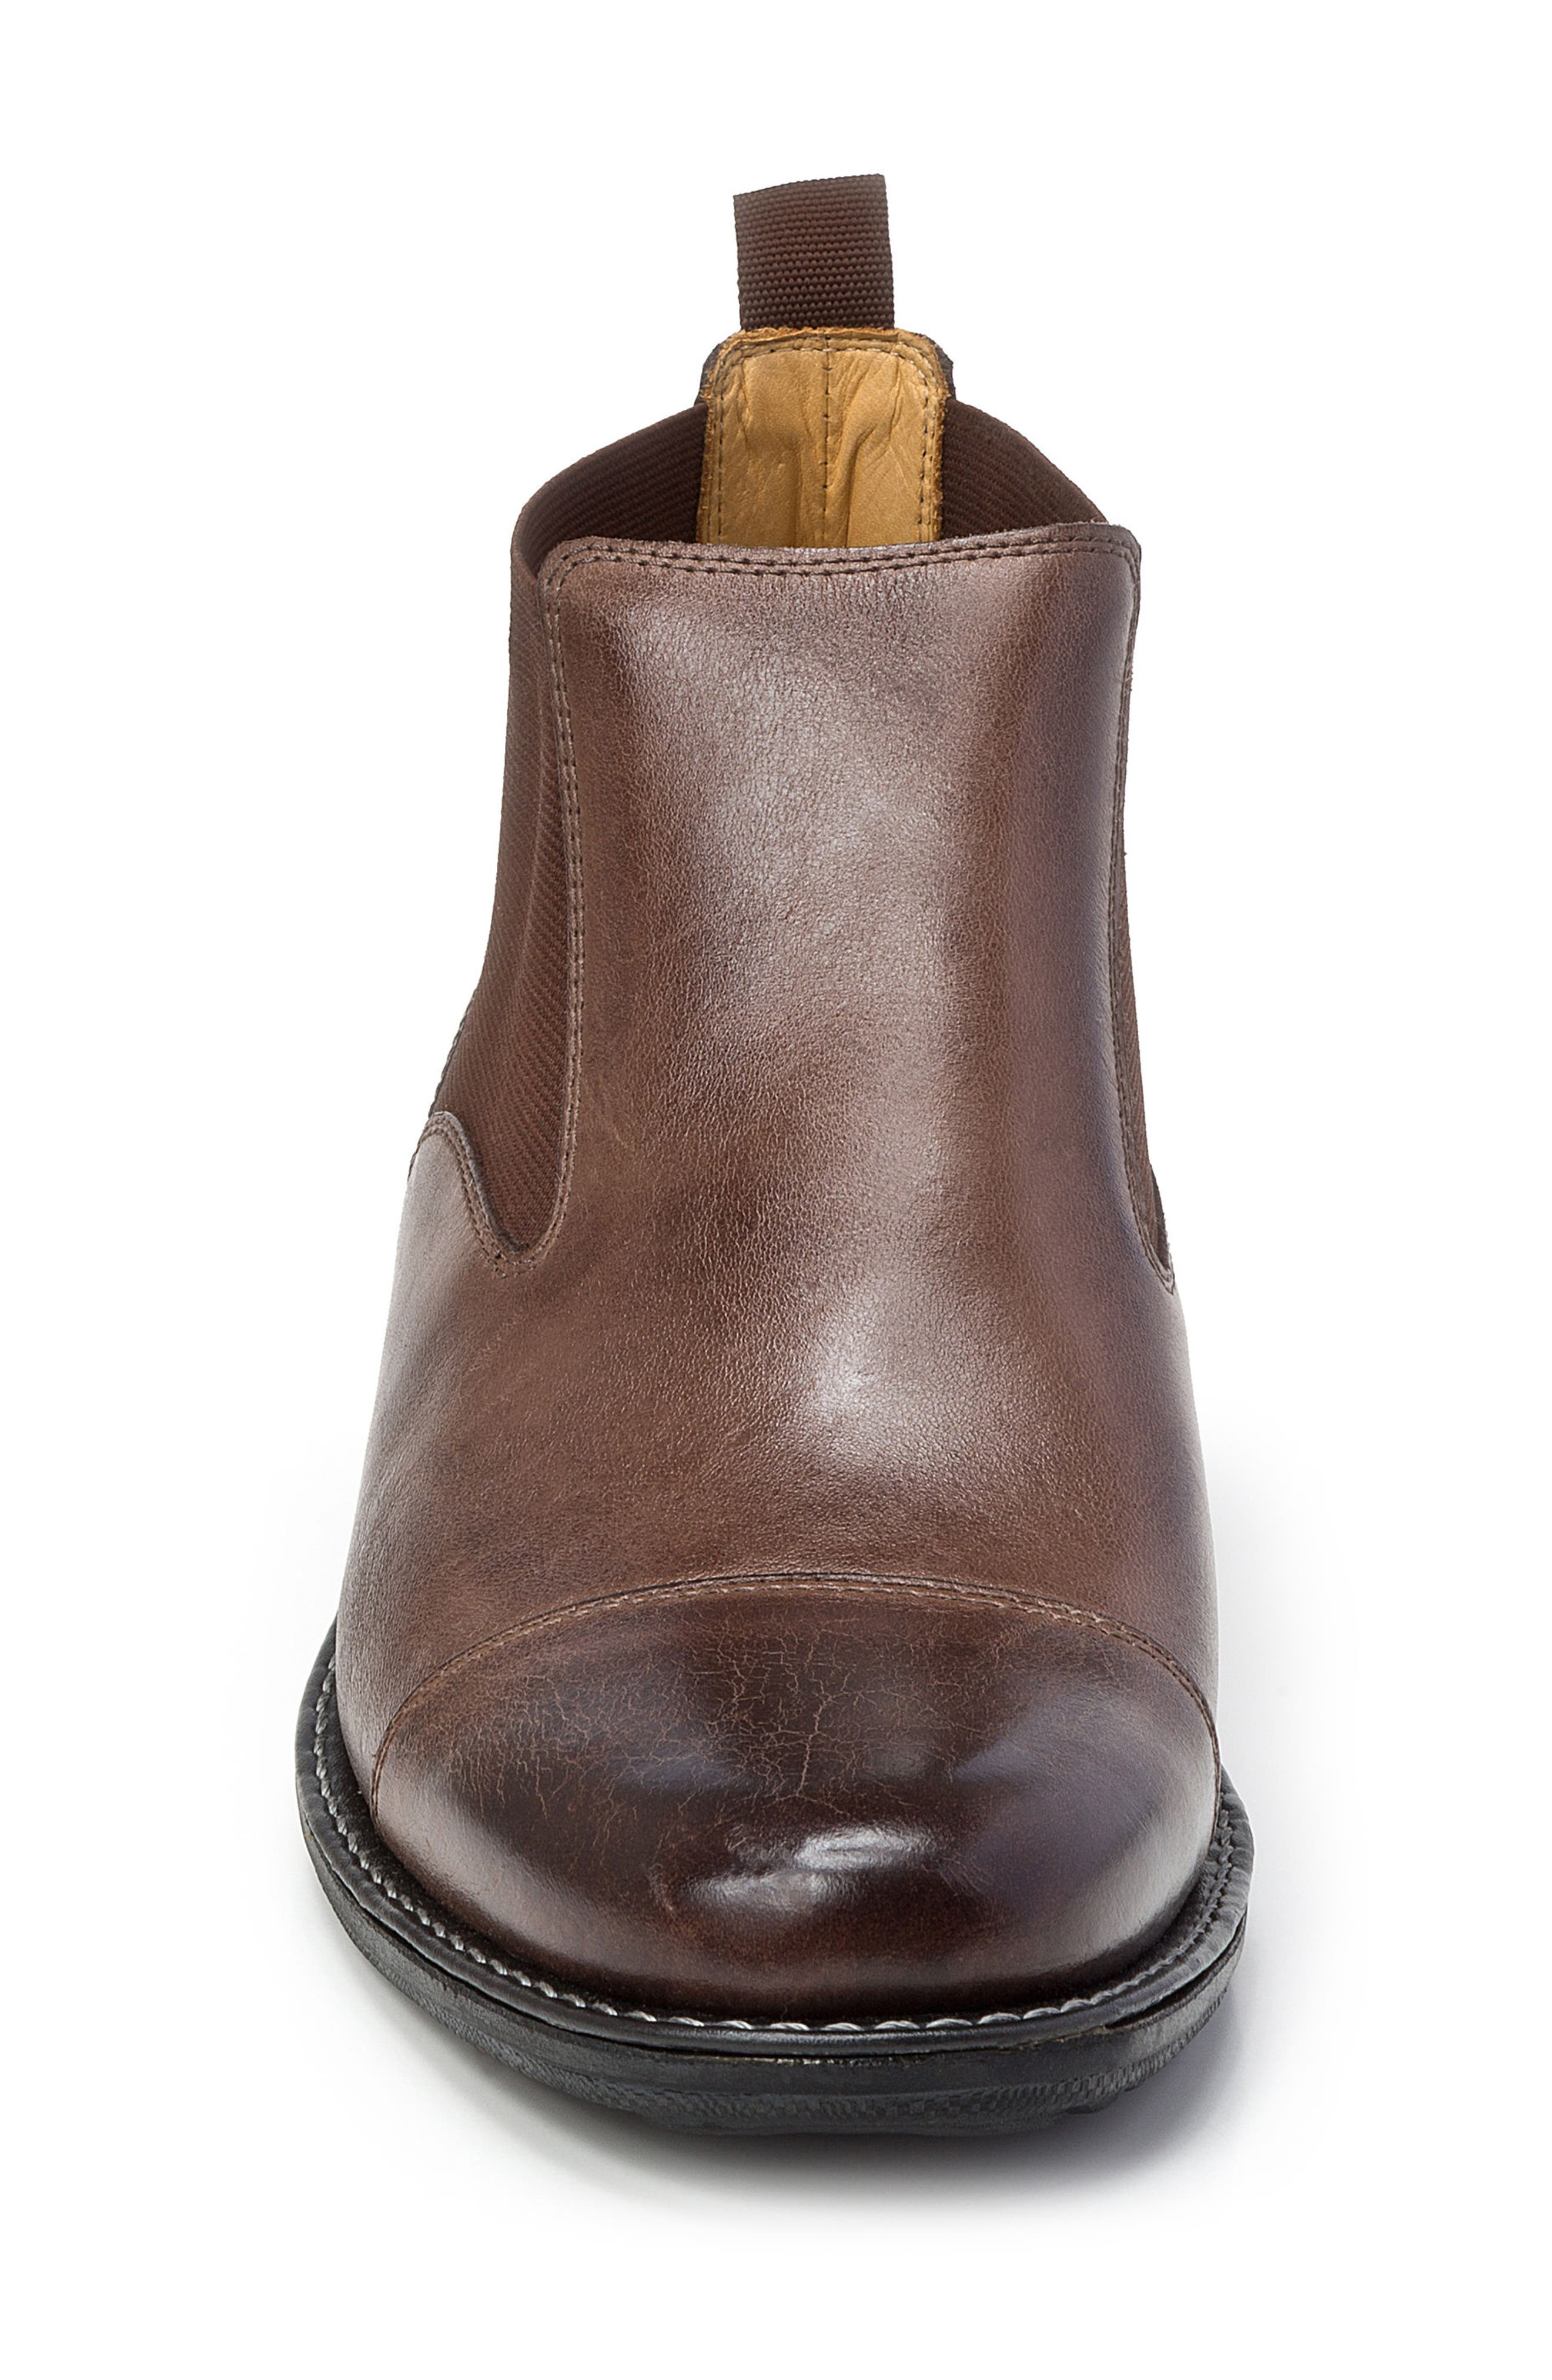 Norbert Chelsea Boot,                             Alternate thumbnail 4, color,                             Brown Leather